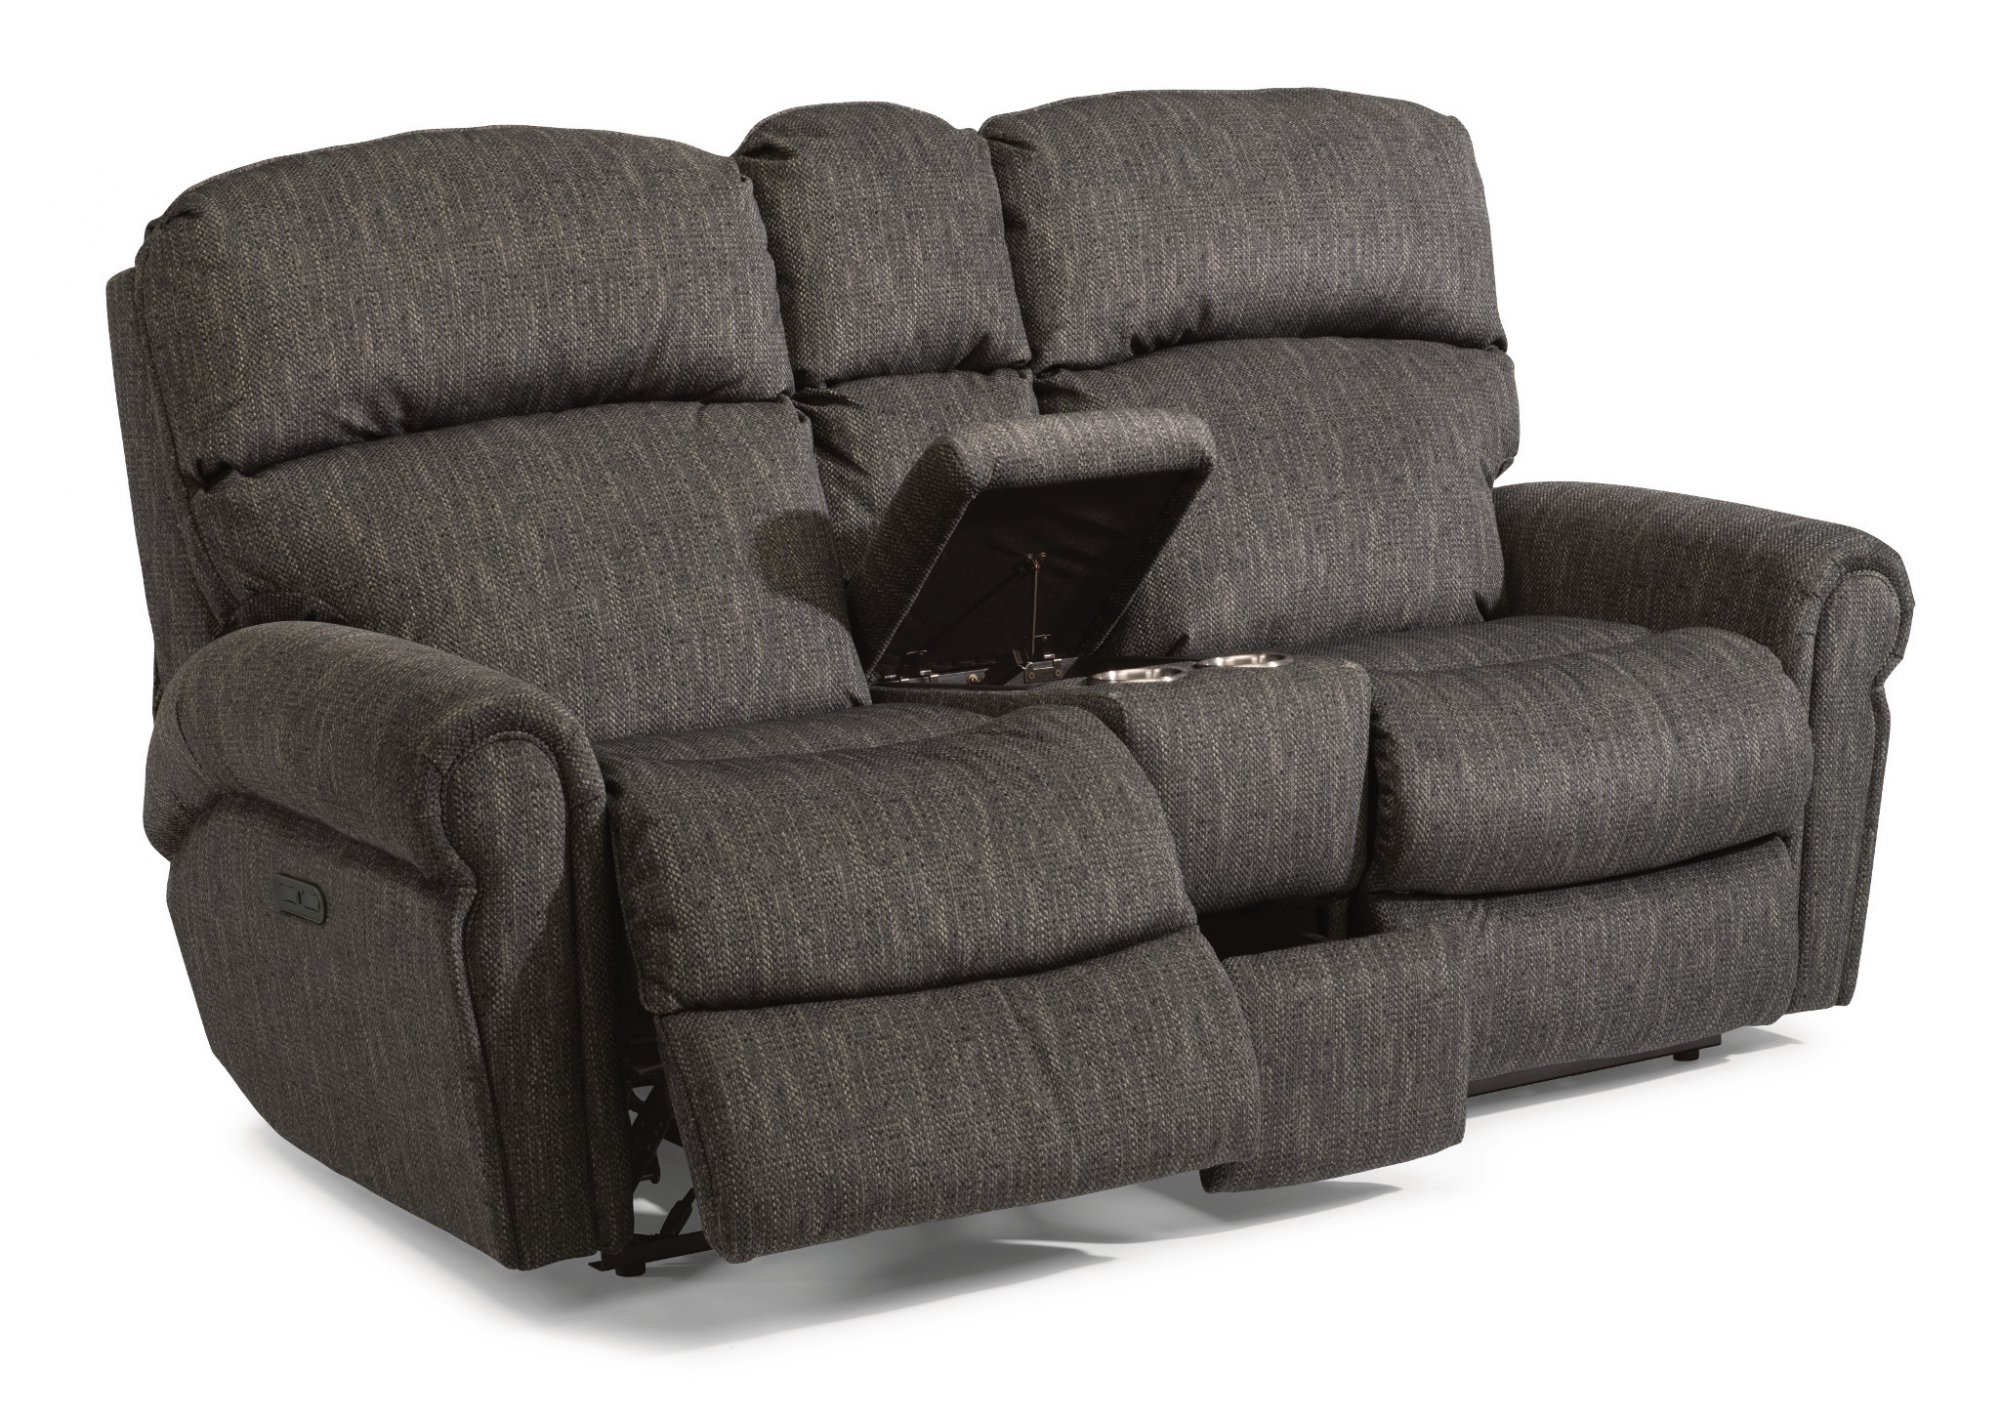 Flexsteel Langston  Fabric Power Reclining Loveseat with Console and Power Headrests